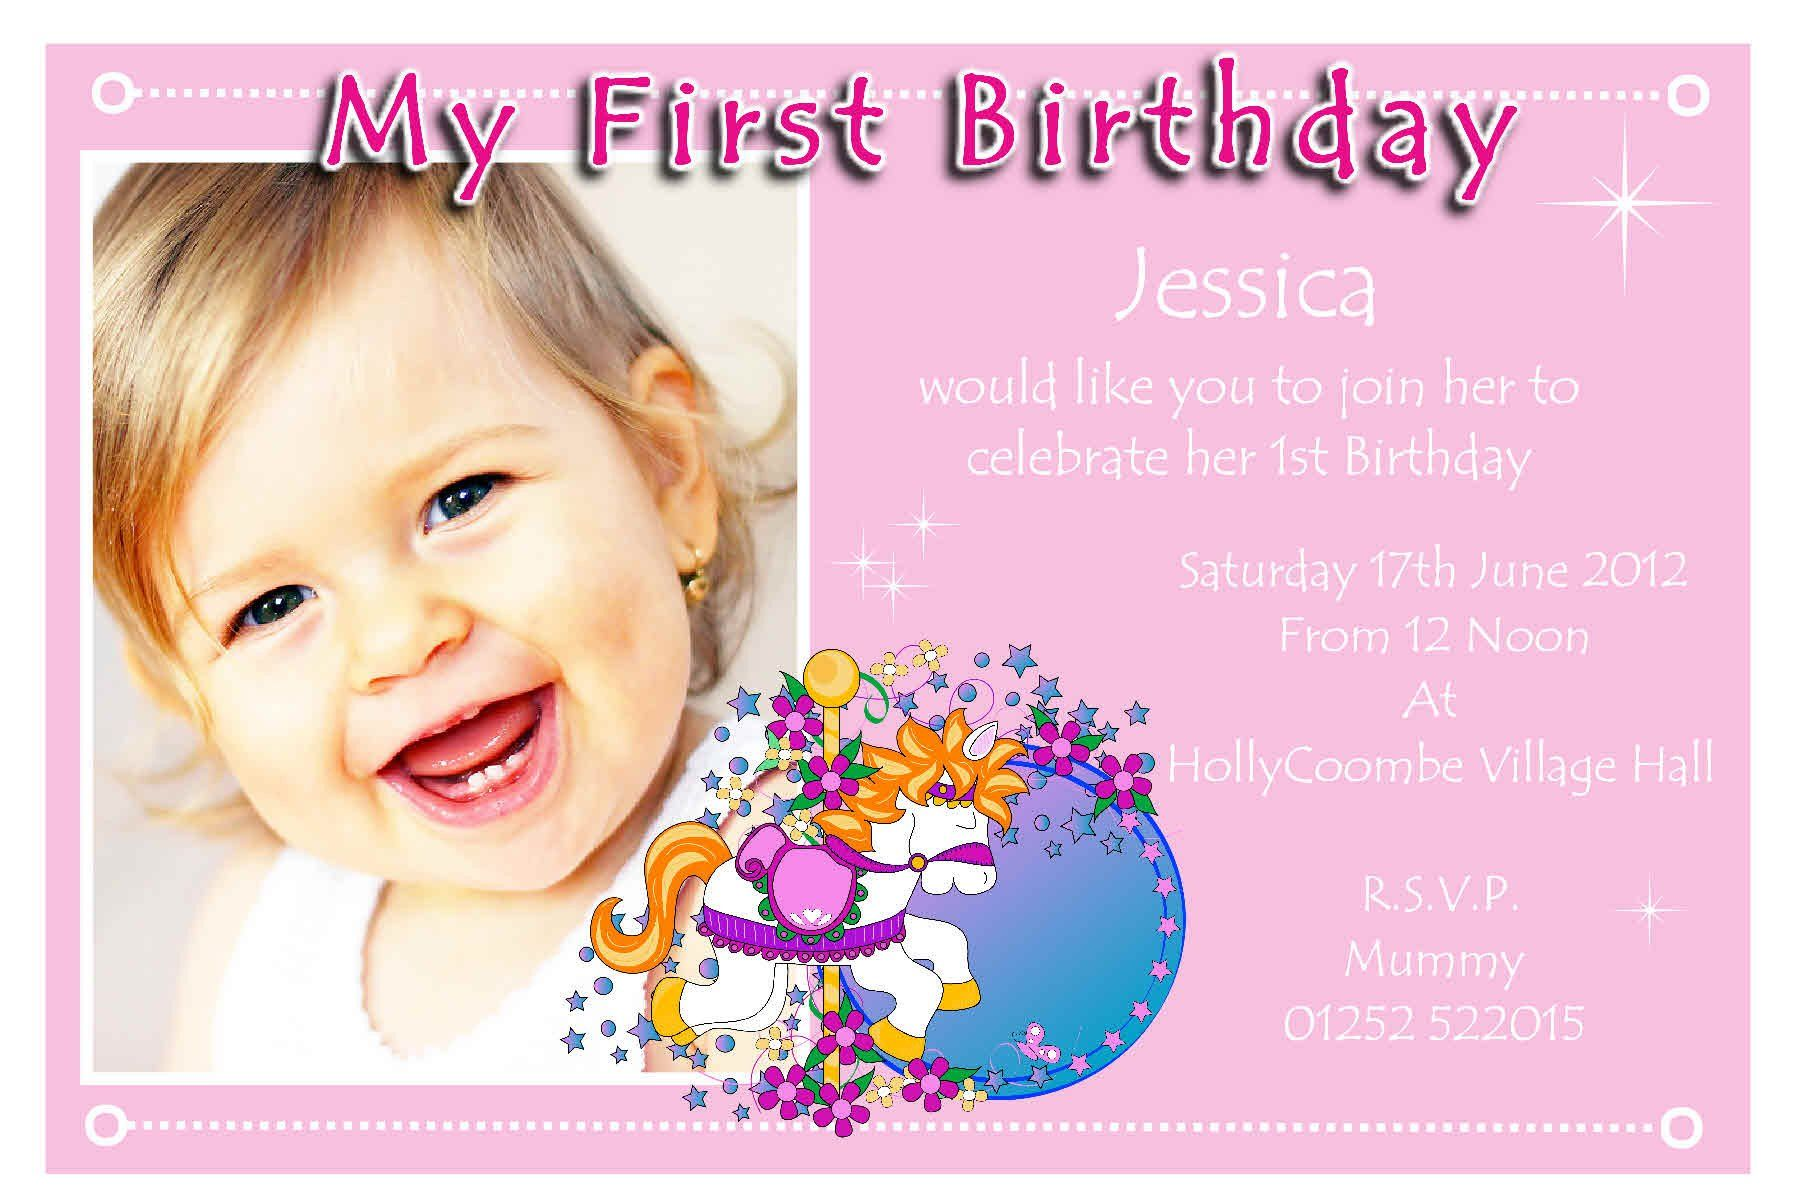 Birthday invitations free online printable birthday invitations birthday invitations free online printable filmwisefo